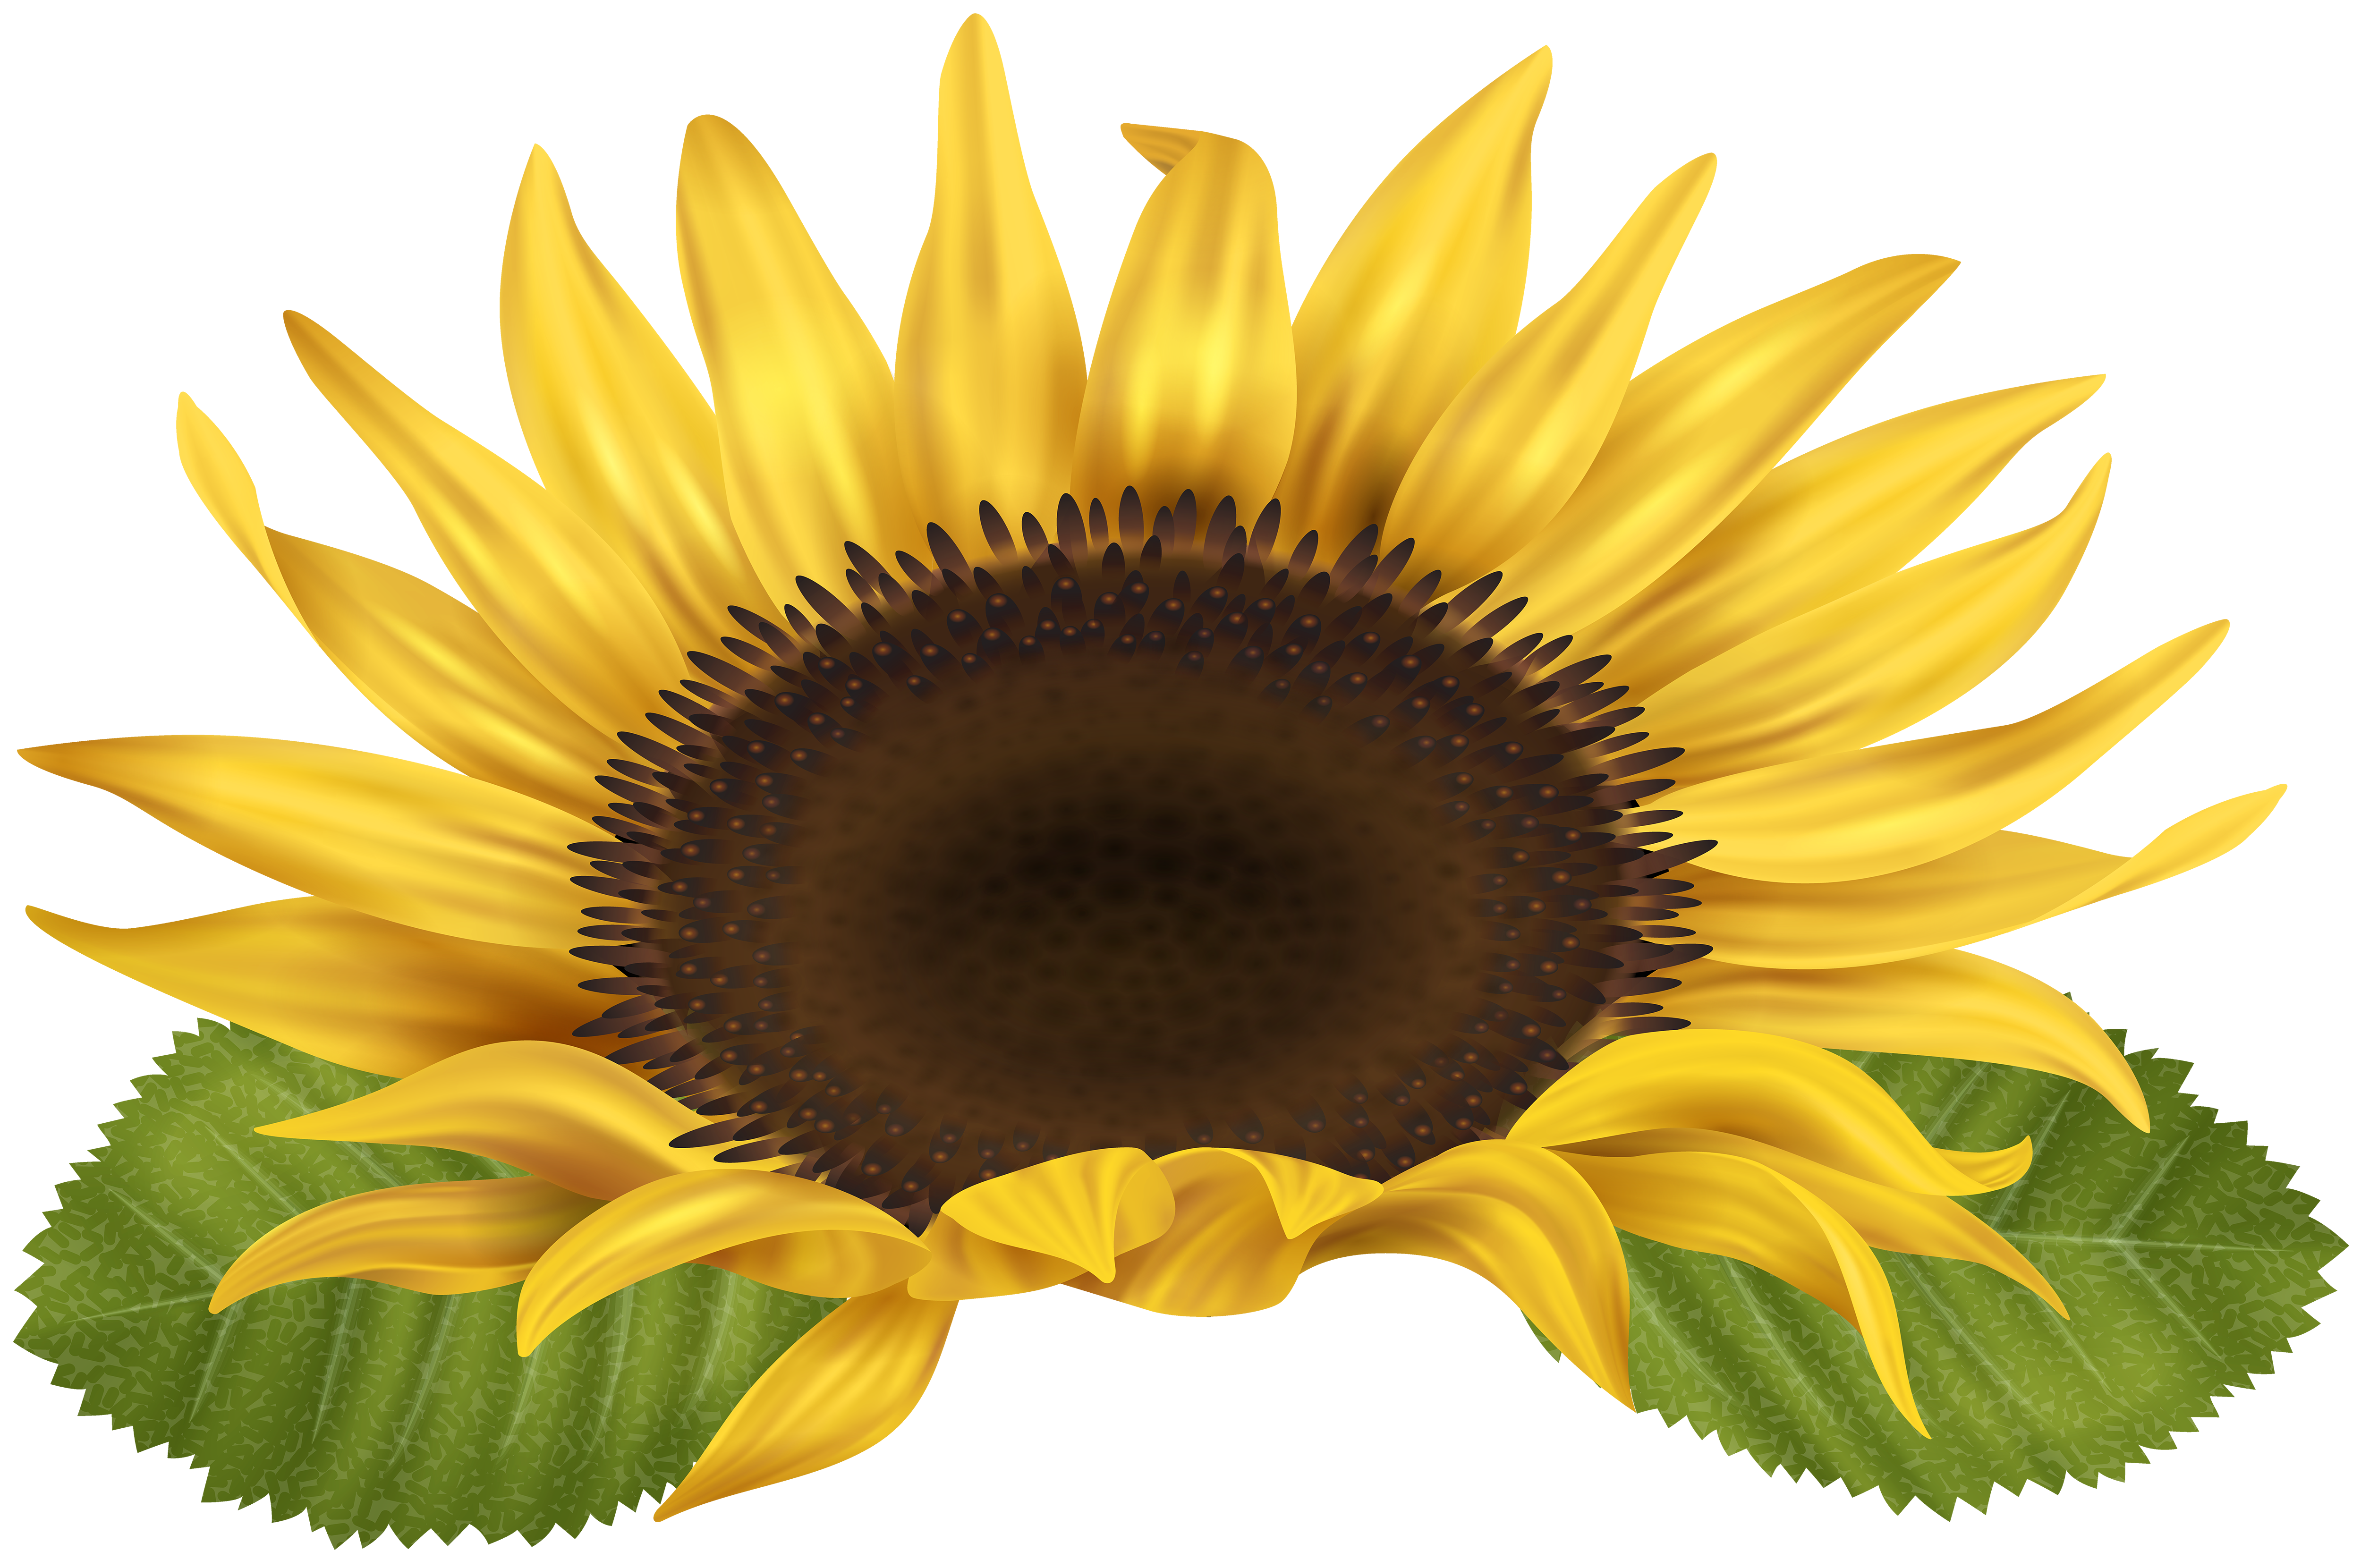 Sunflower PNG Clip Art Image.